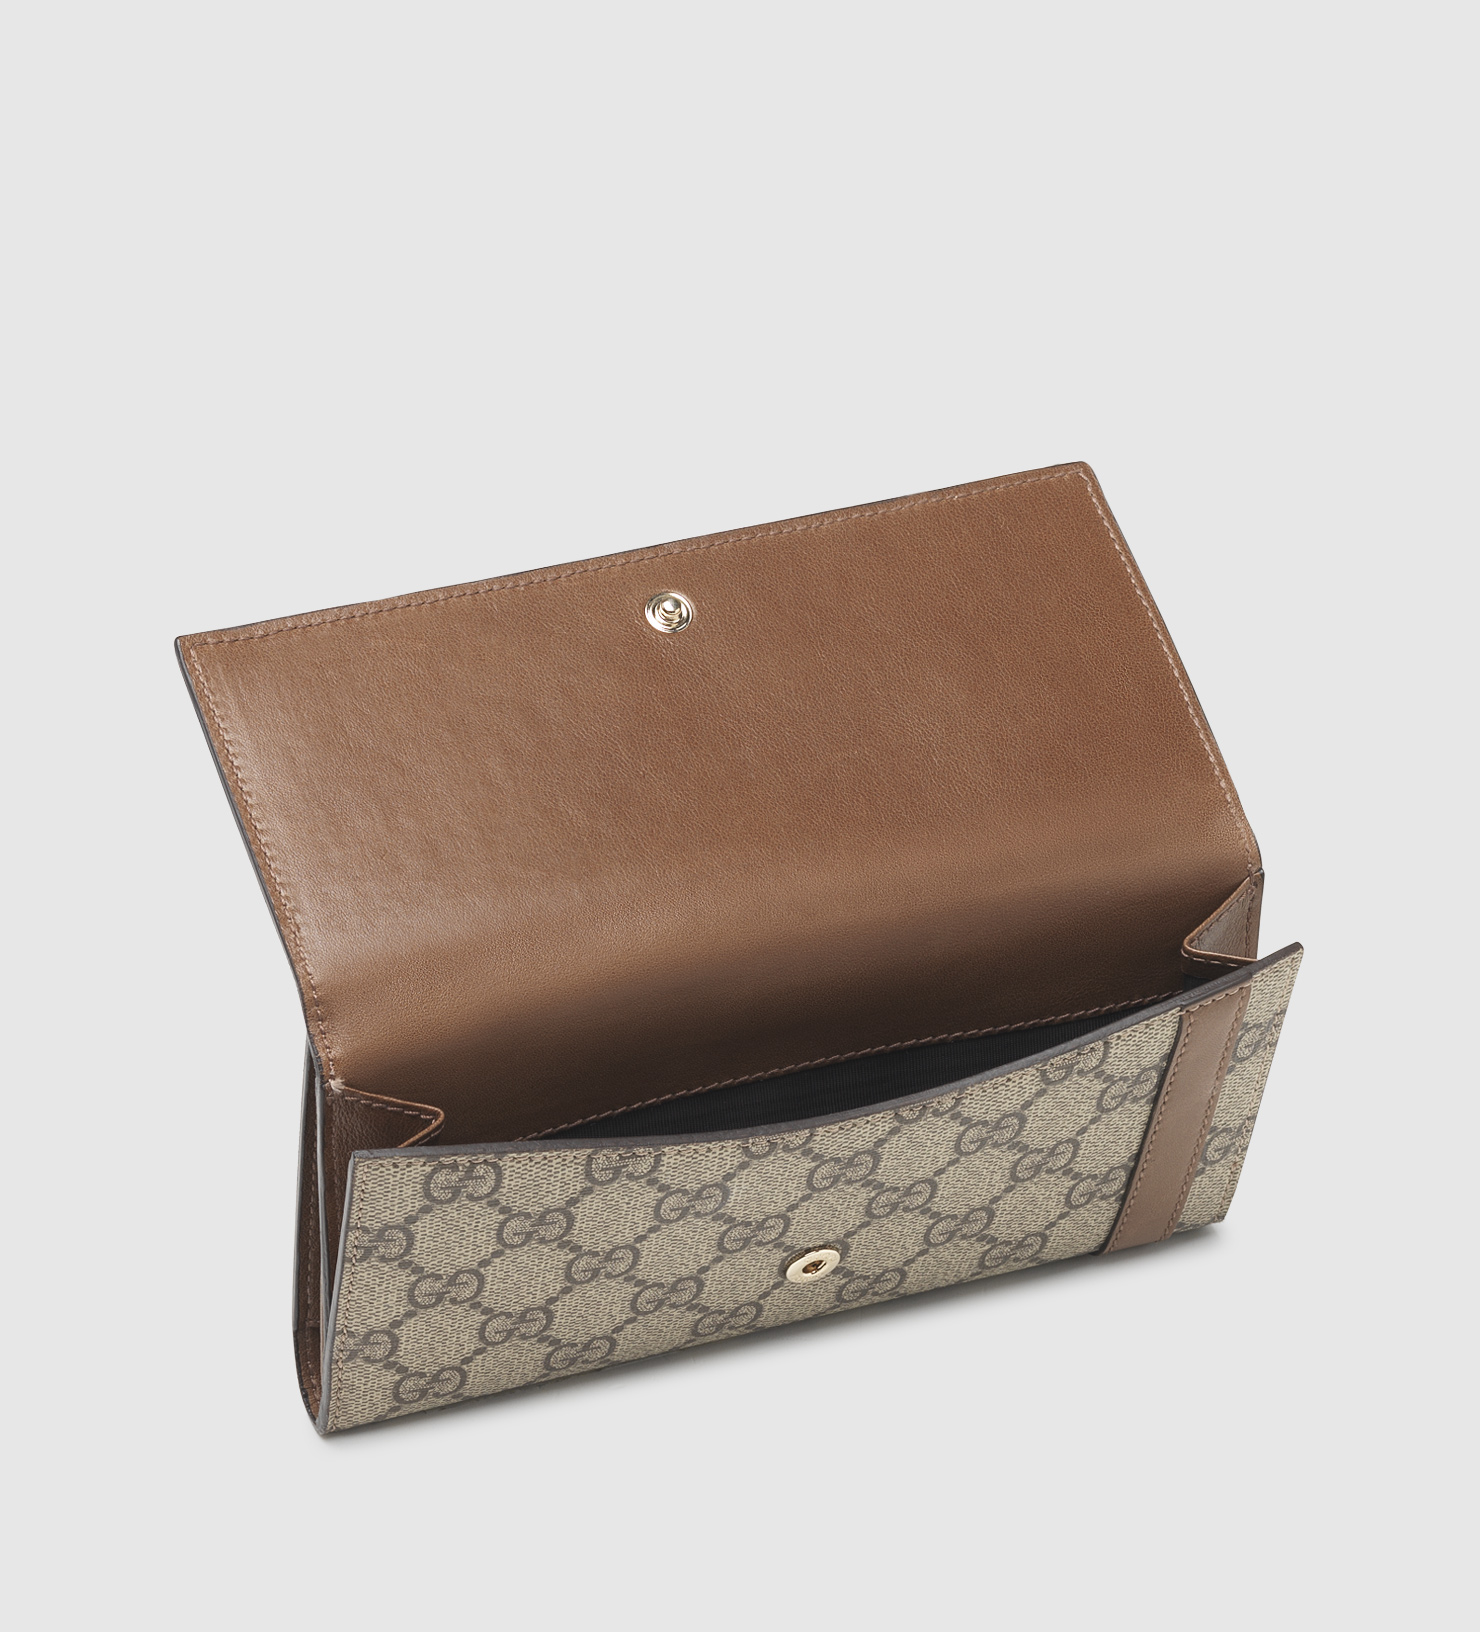 eb71afa38 Gucci Nice Gg Supreme Canvas Continental Wallet in Brown - Lyst